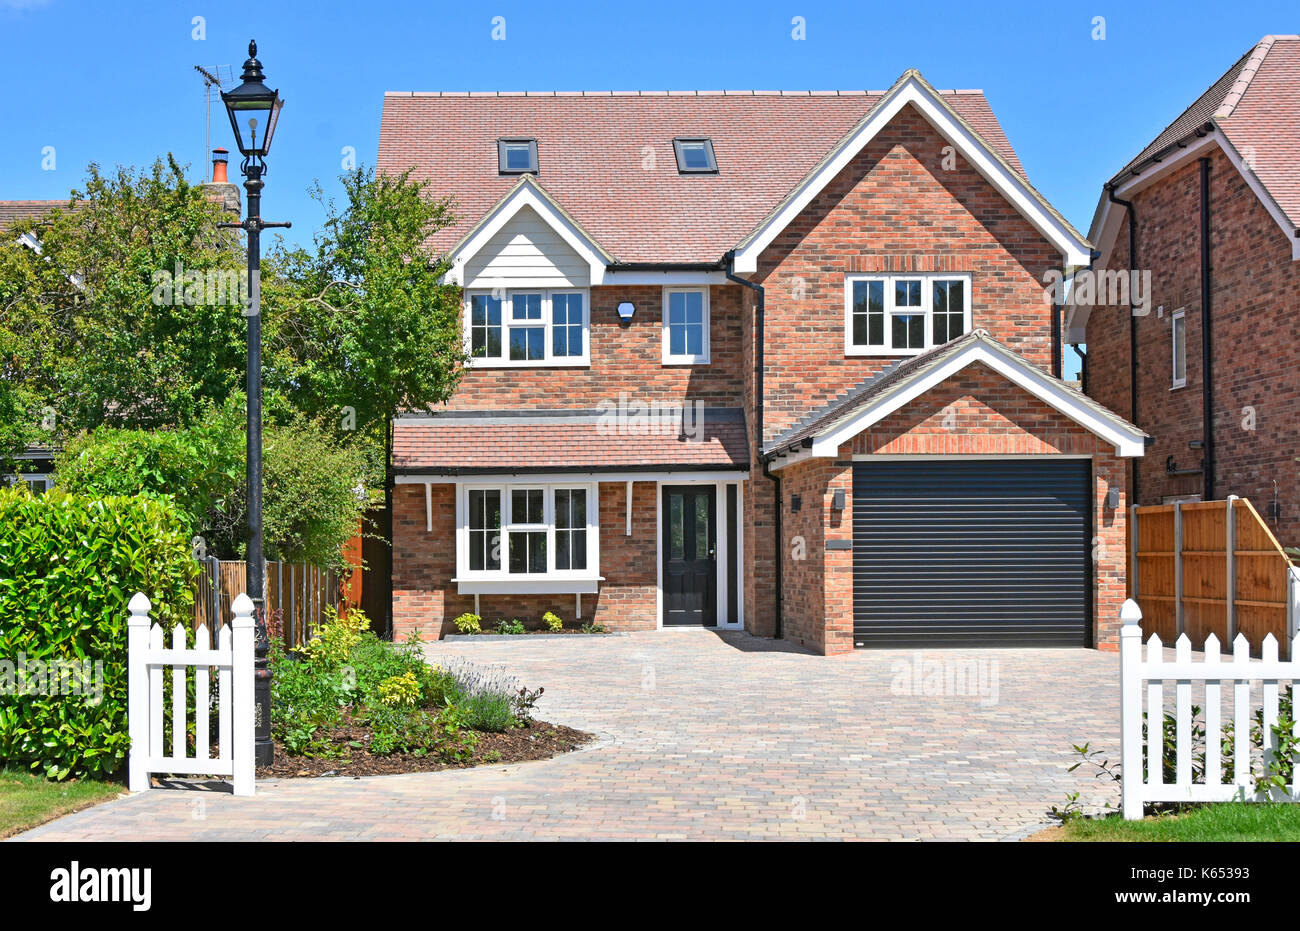 New home for sale detached five bedroom new build property one of two on demolished cottage plot in village location near Brentwood Essex England UK - Stock Image